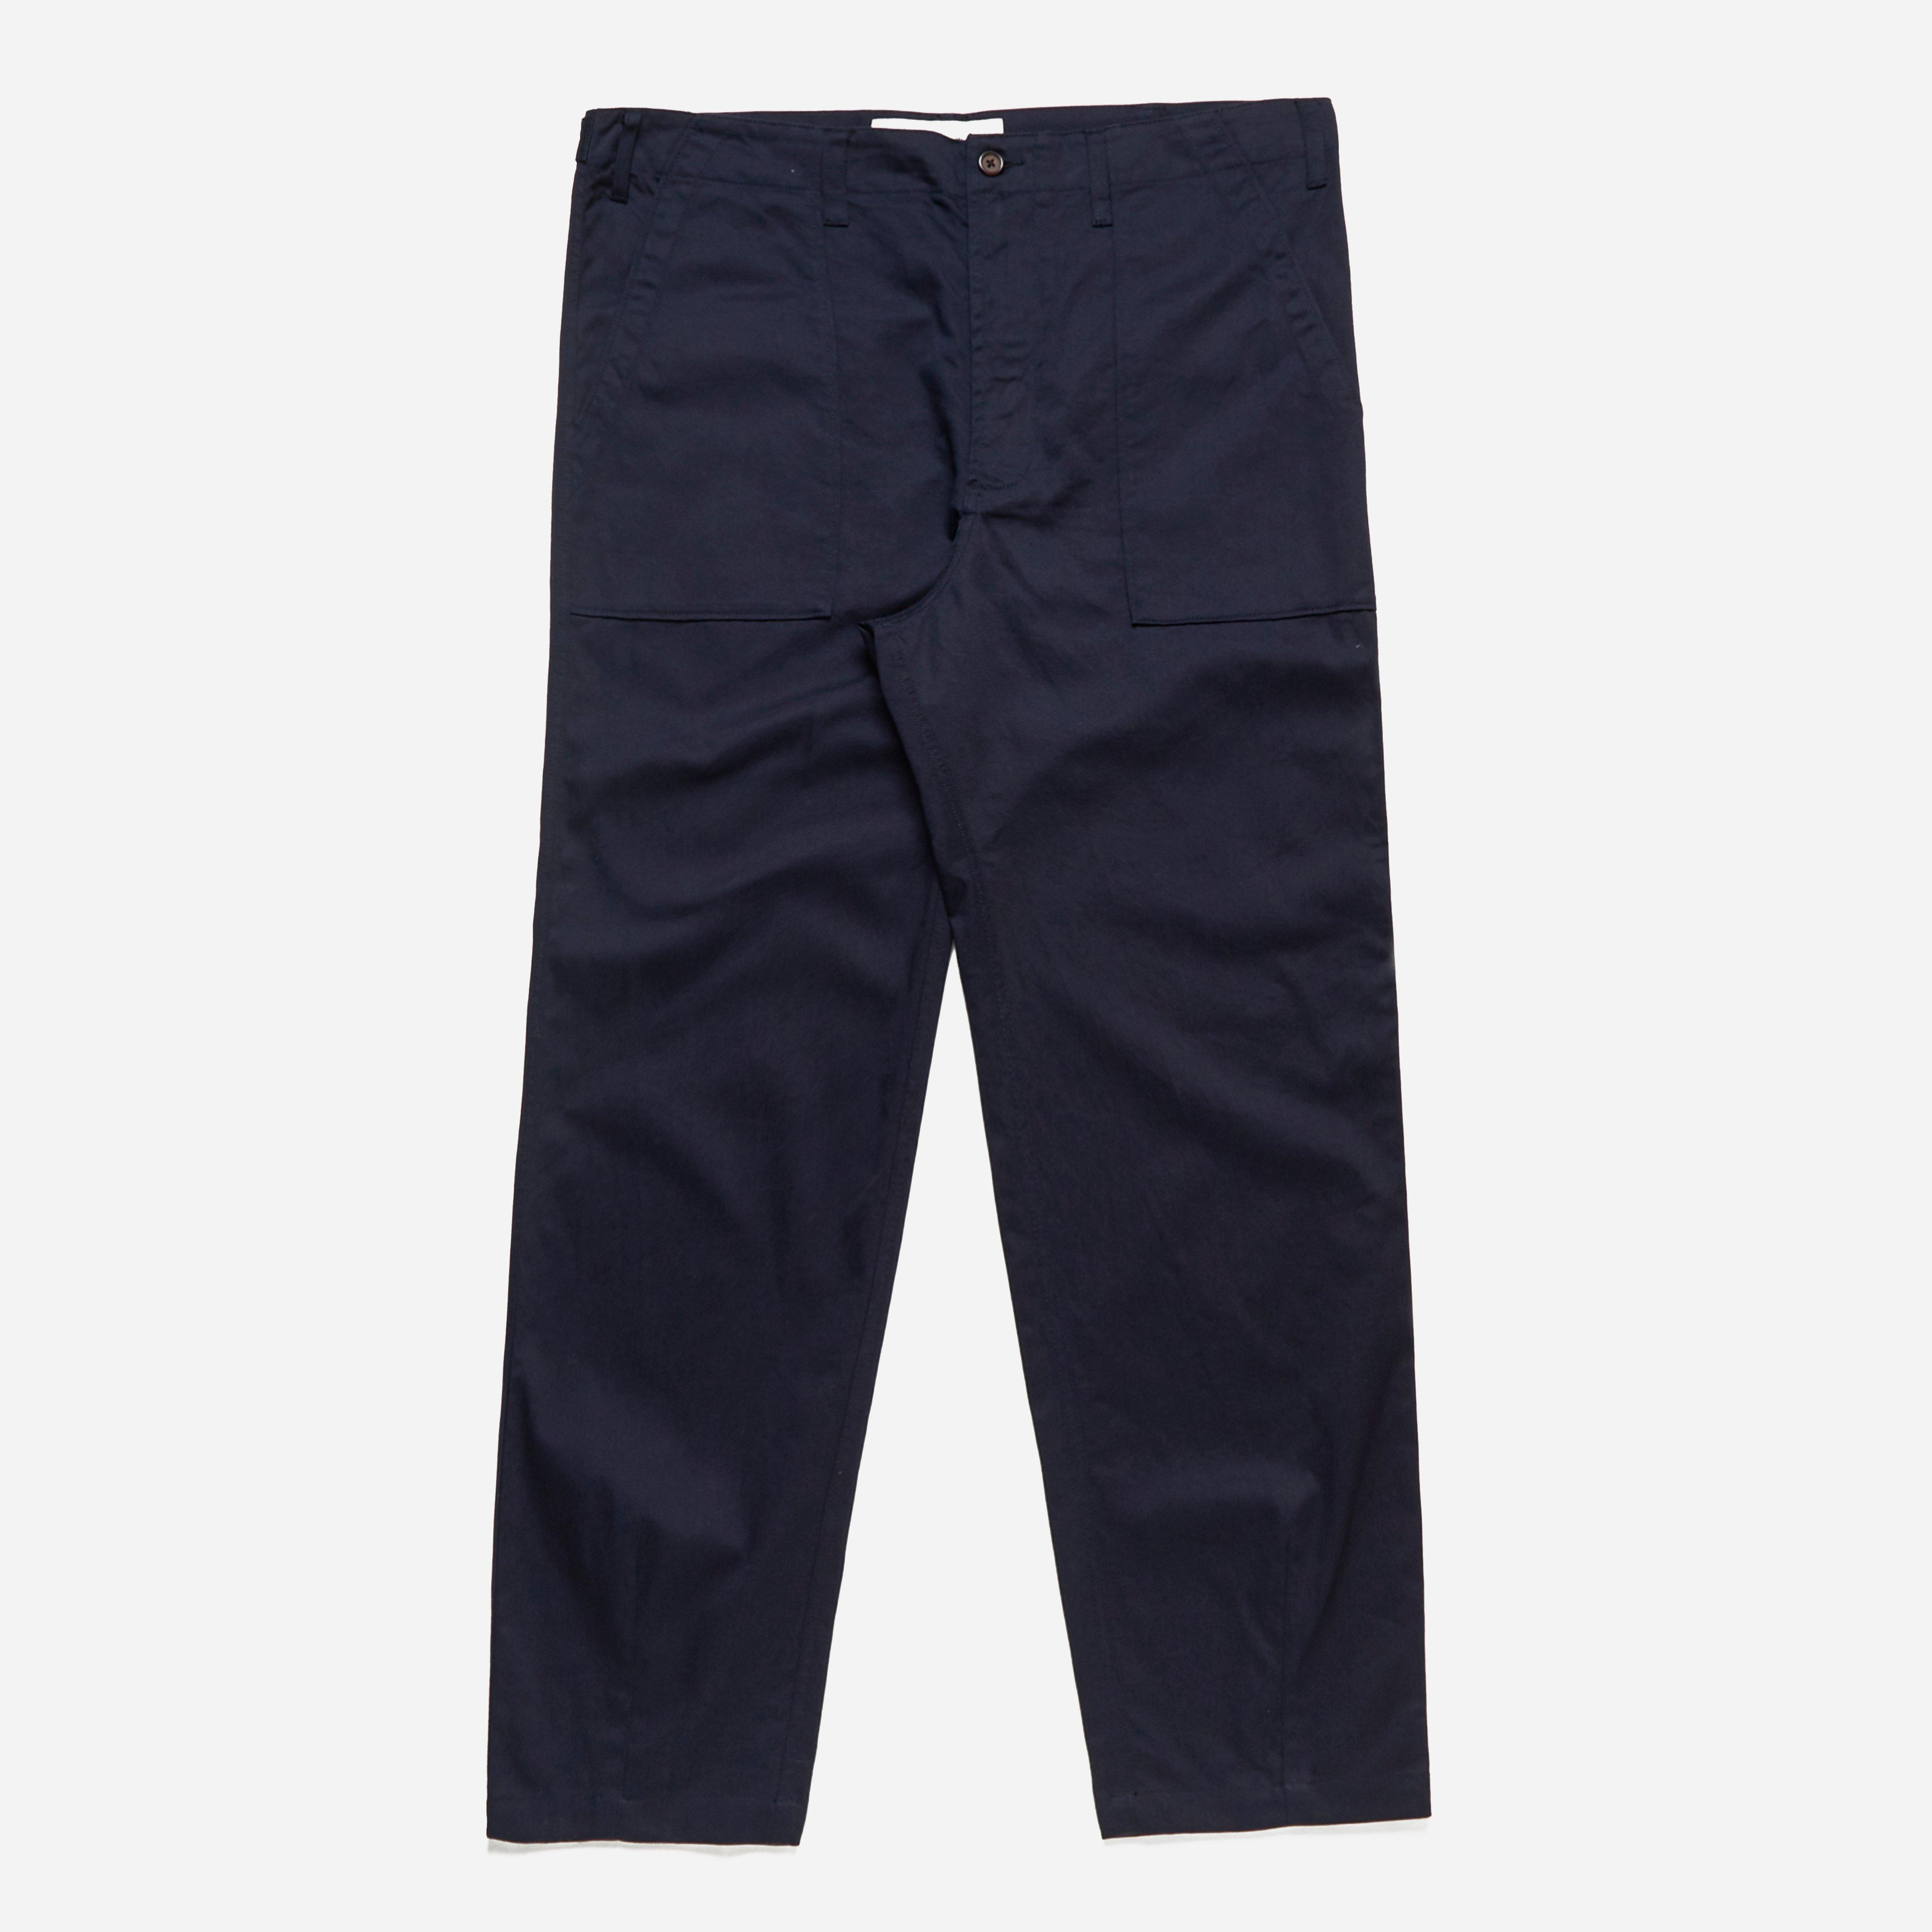 Universal Works Twill Fatigue Pants